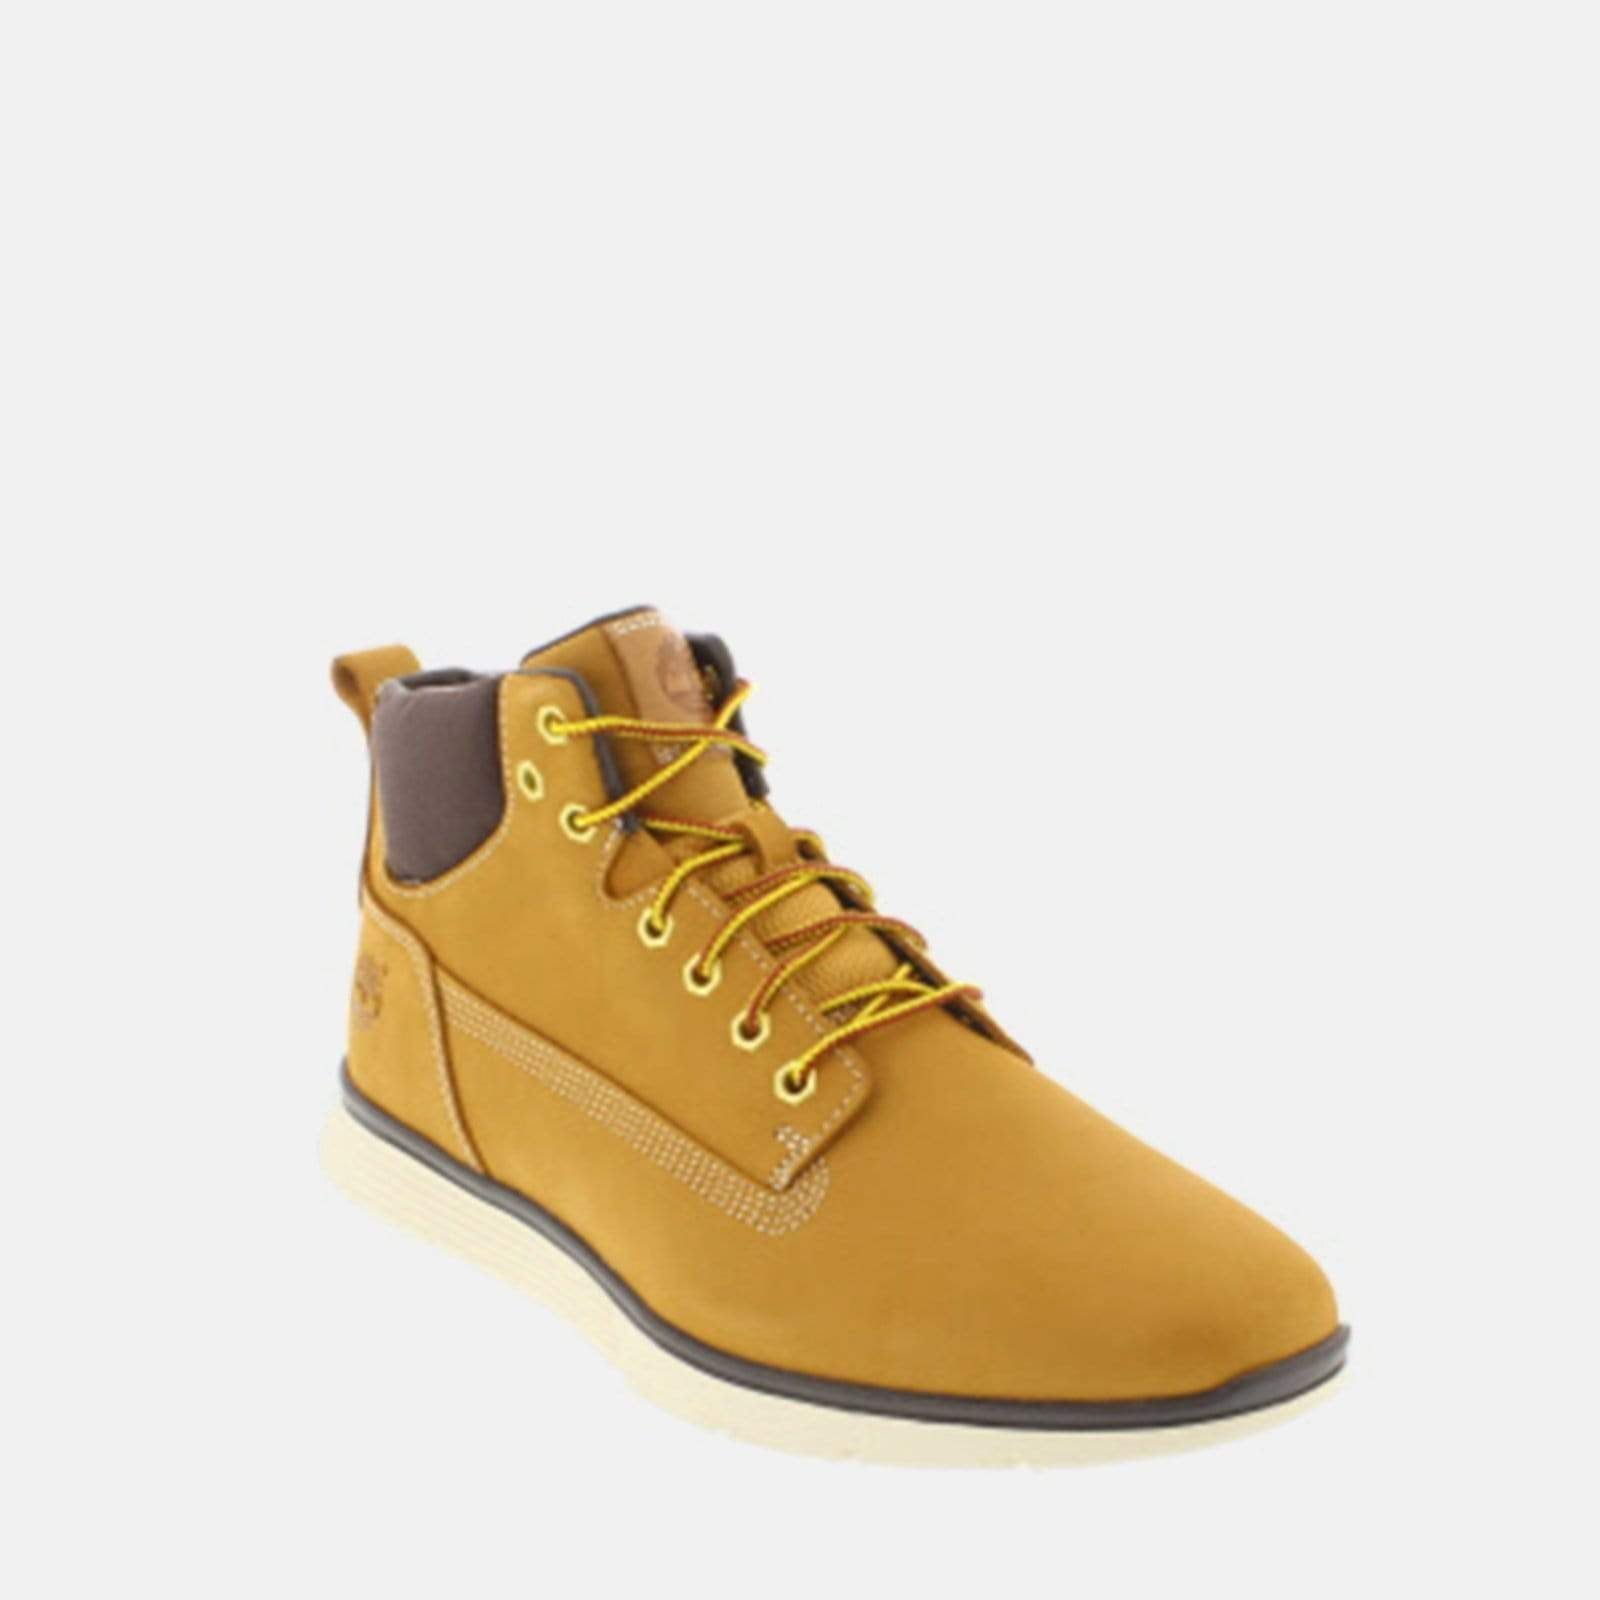 Timberland Footwear Killington Chukka CA191I Wheat